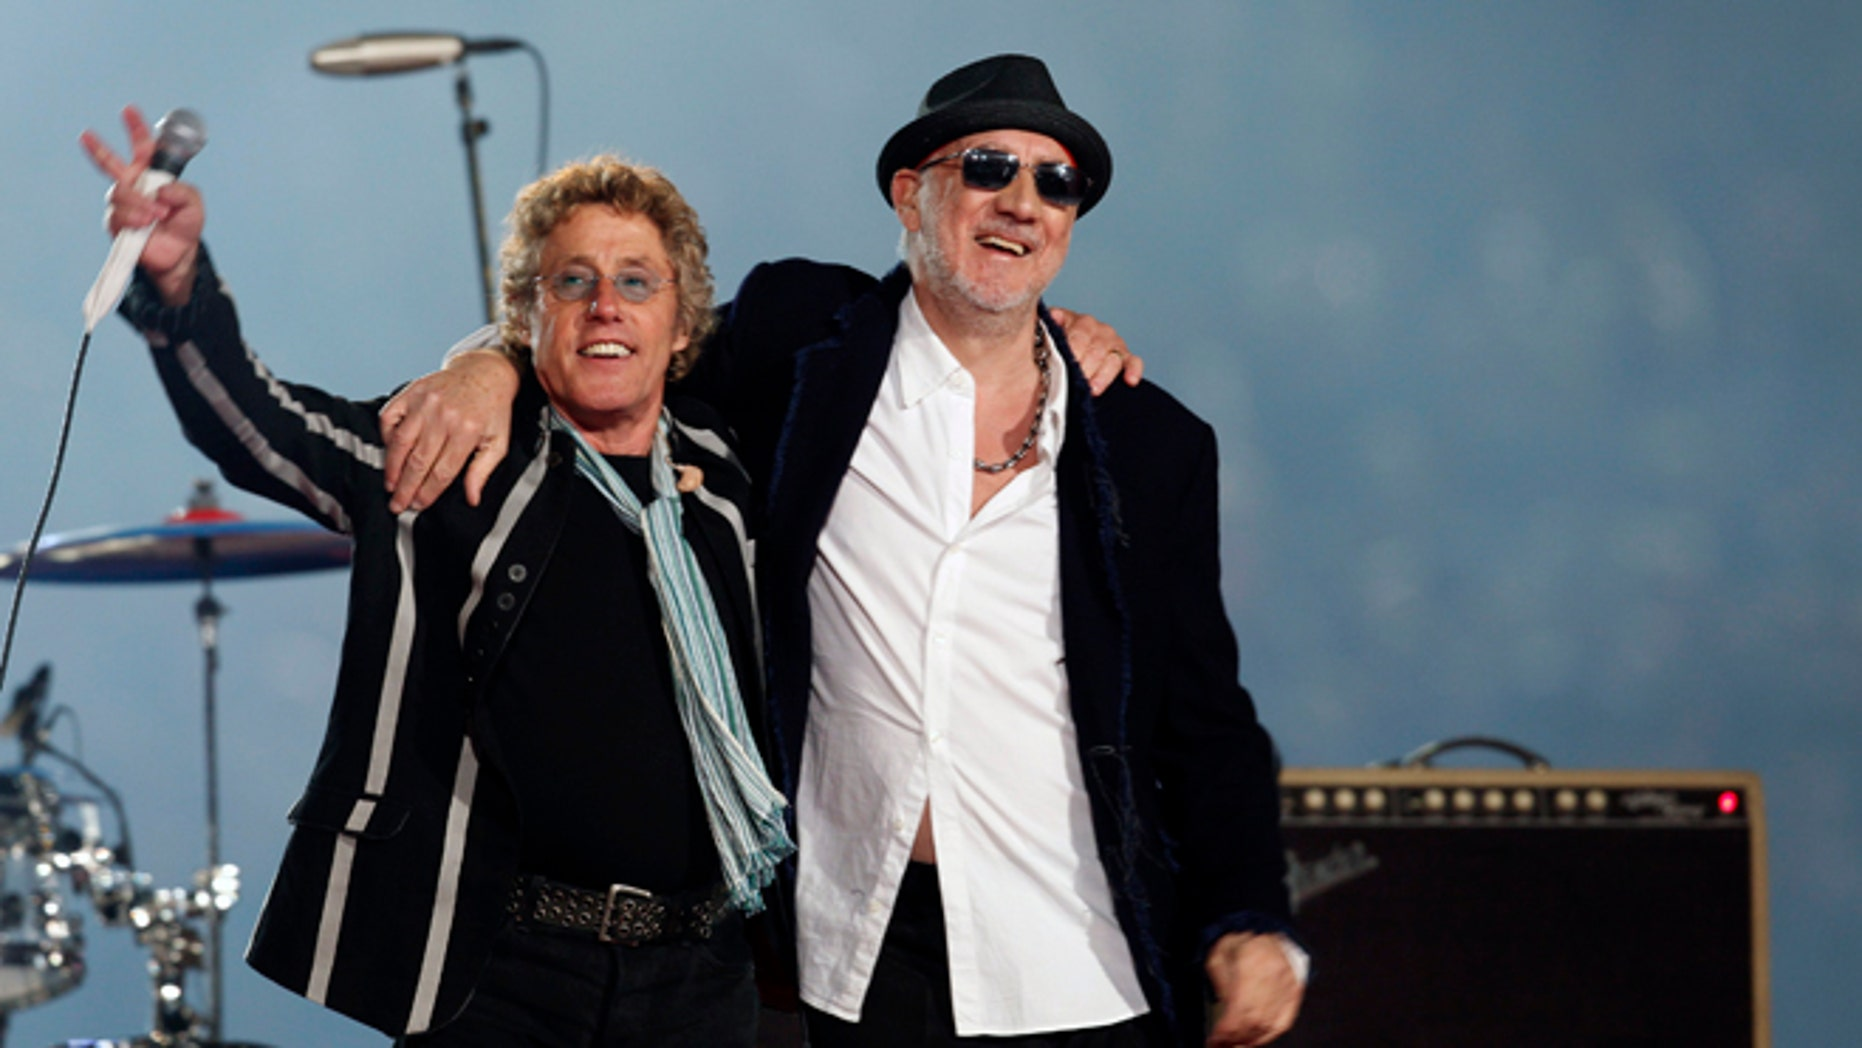 The Who guitarist Pete Townshend (r., with bandmate Roger Daltrey) says he downloaded child porn in a bid to follow the money trail. (AP)